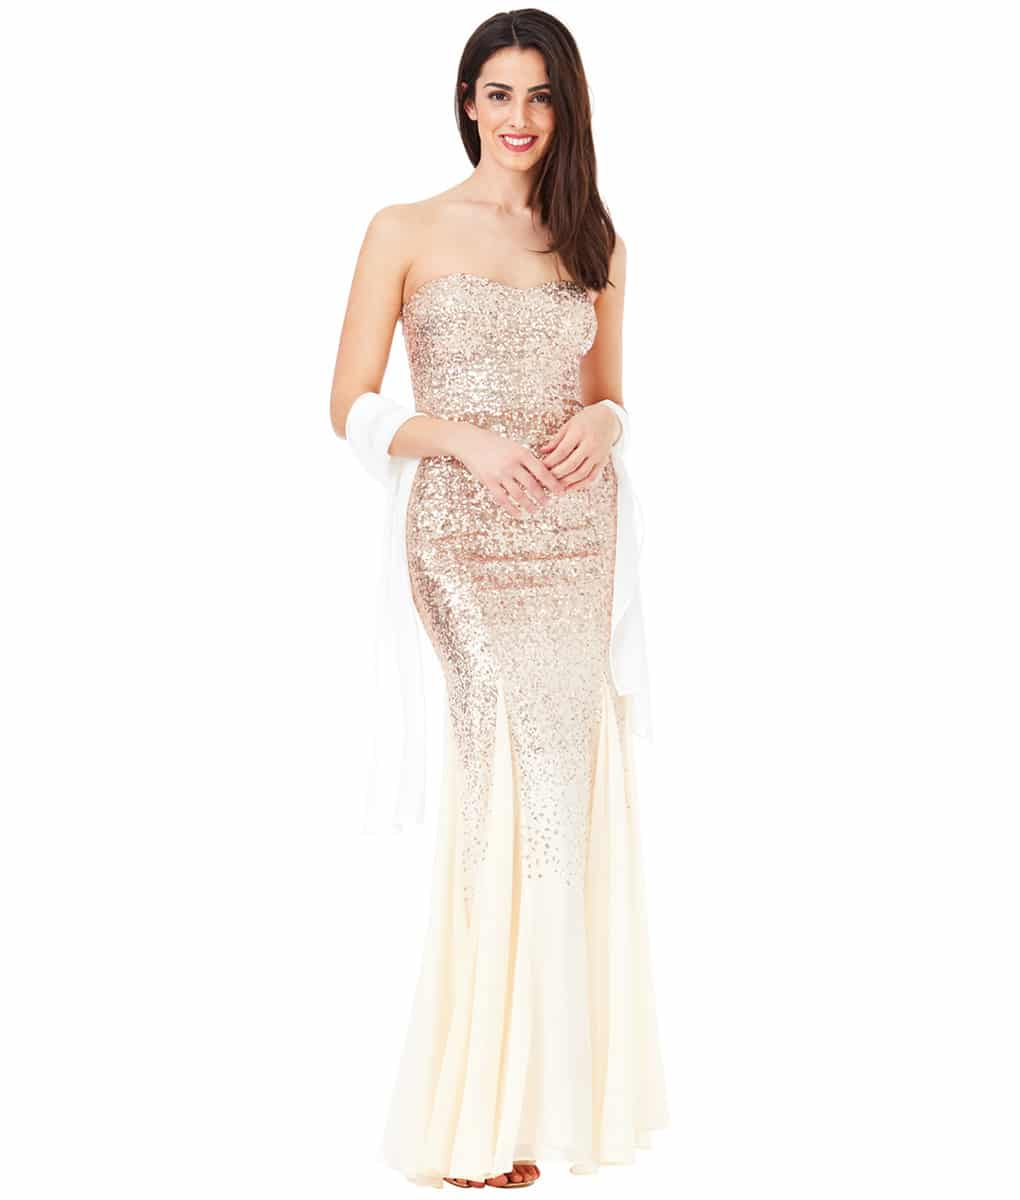 Alila-Strapless-Champagne-Sequin-gown-city-goddess